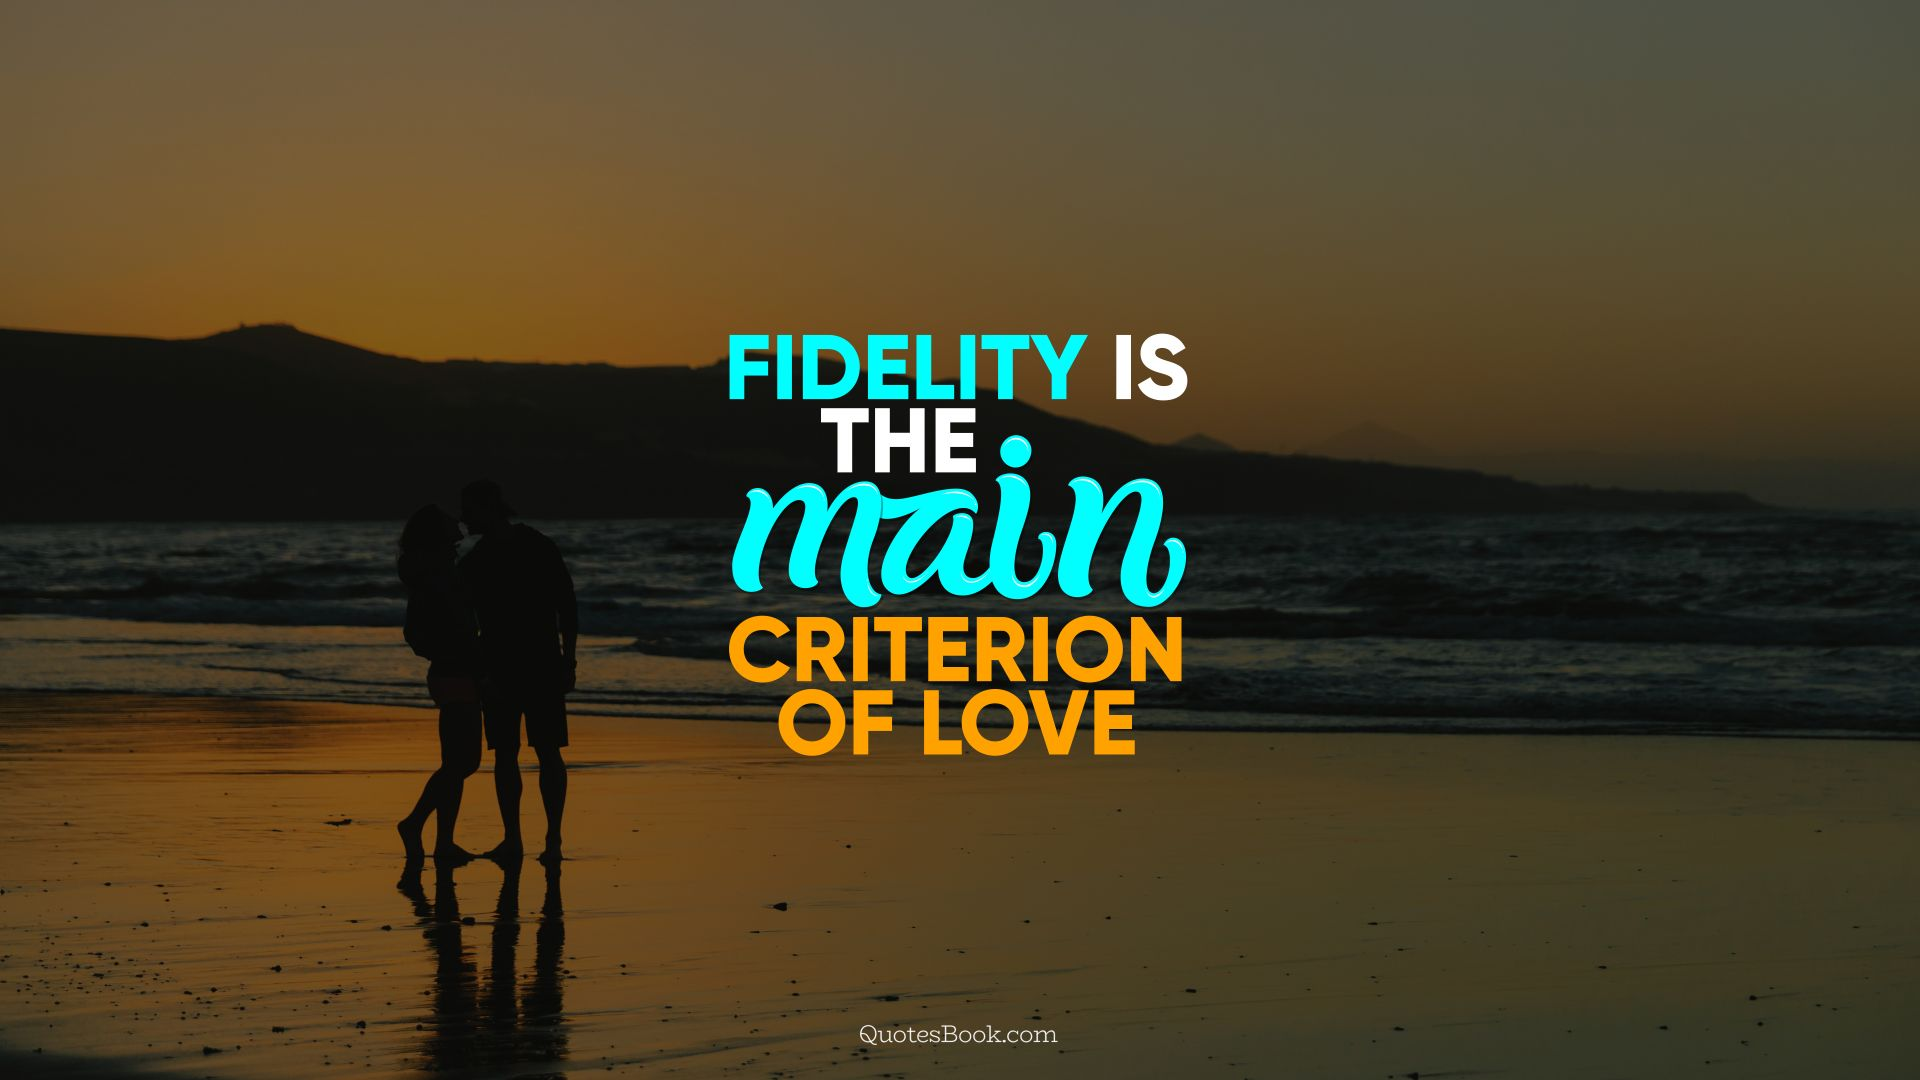 Fidelity is the main criterion of love. - Quote by QuotesBook